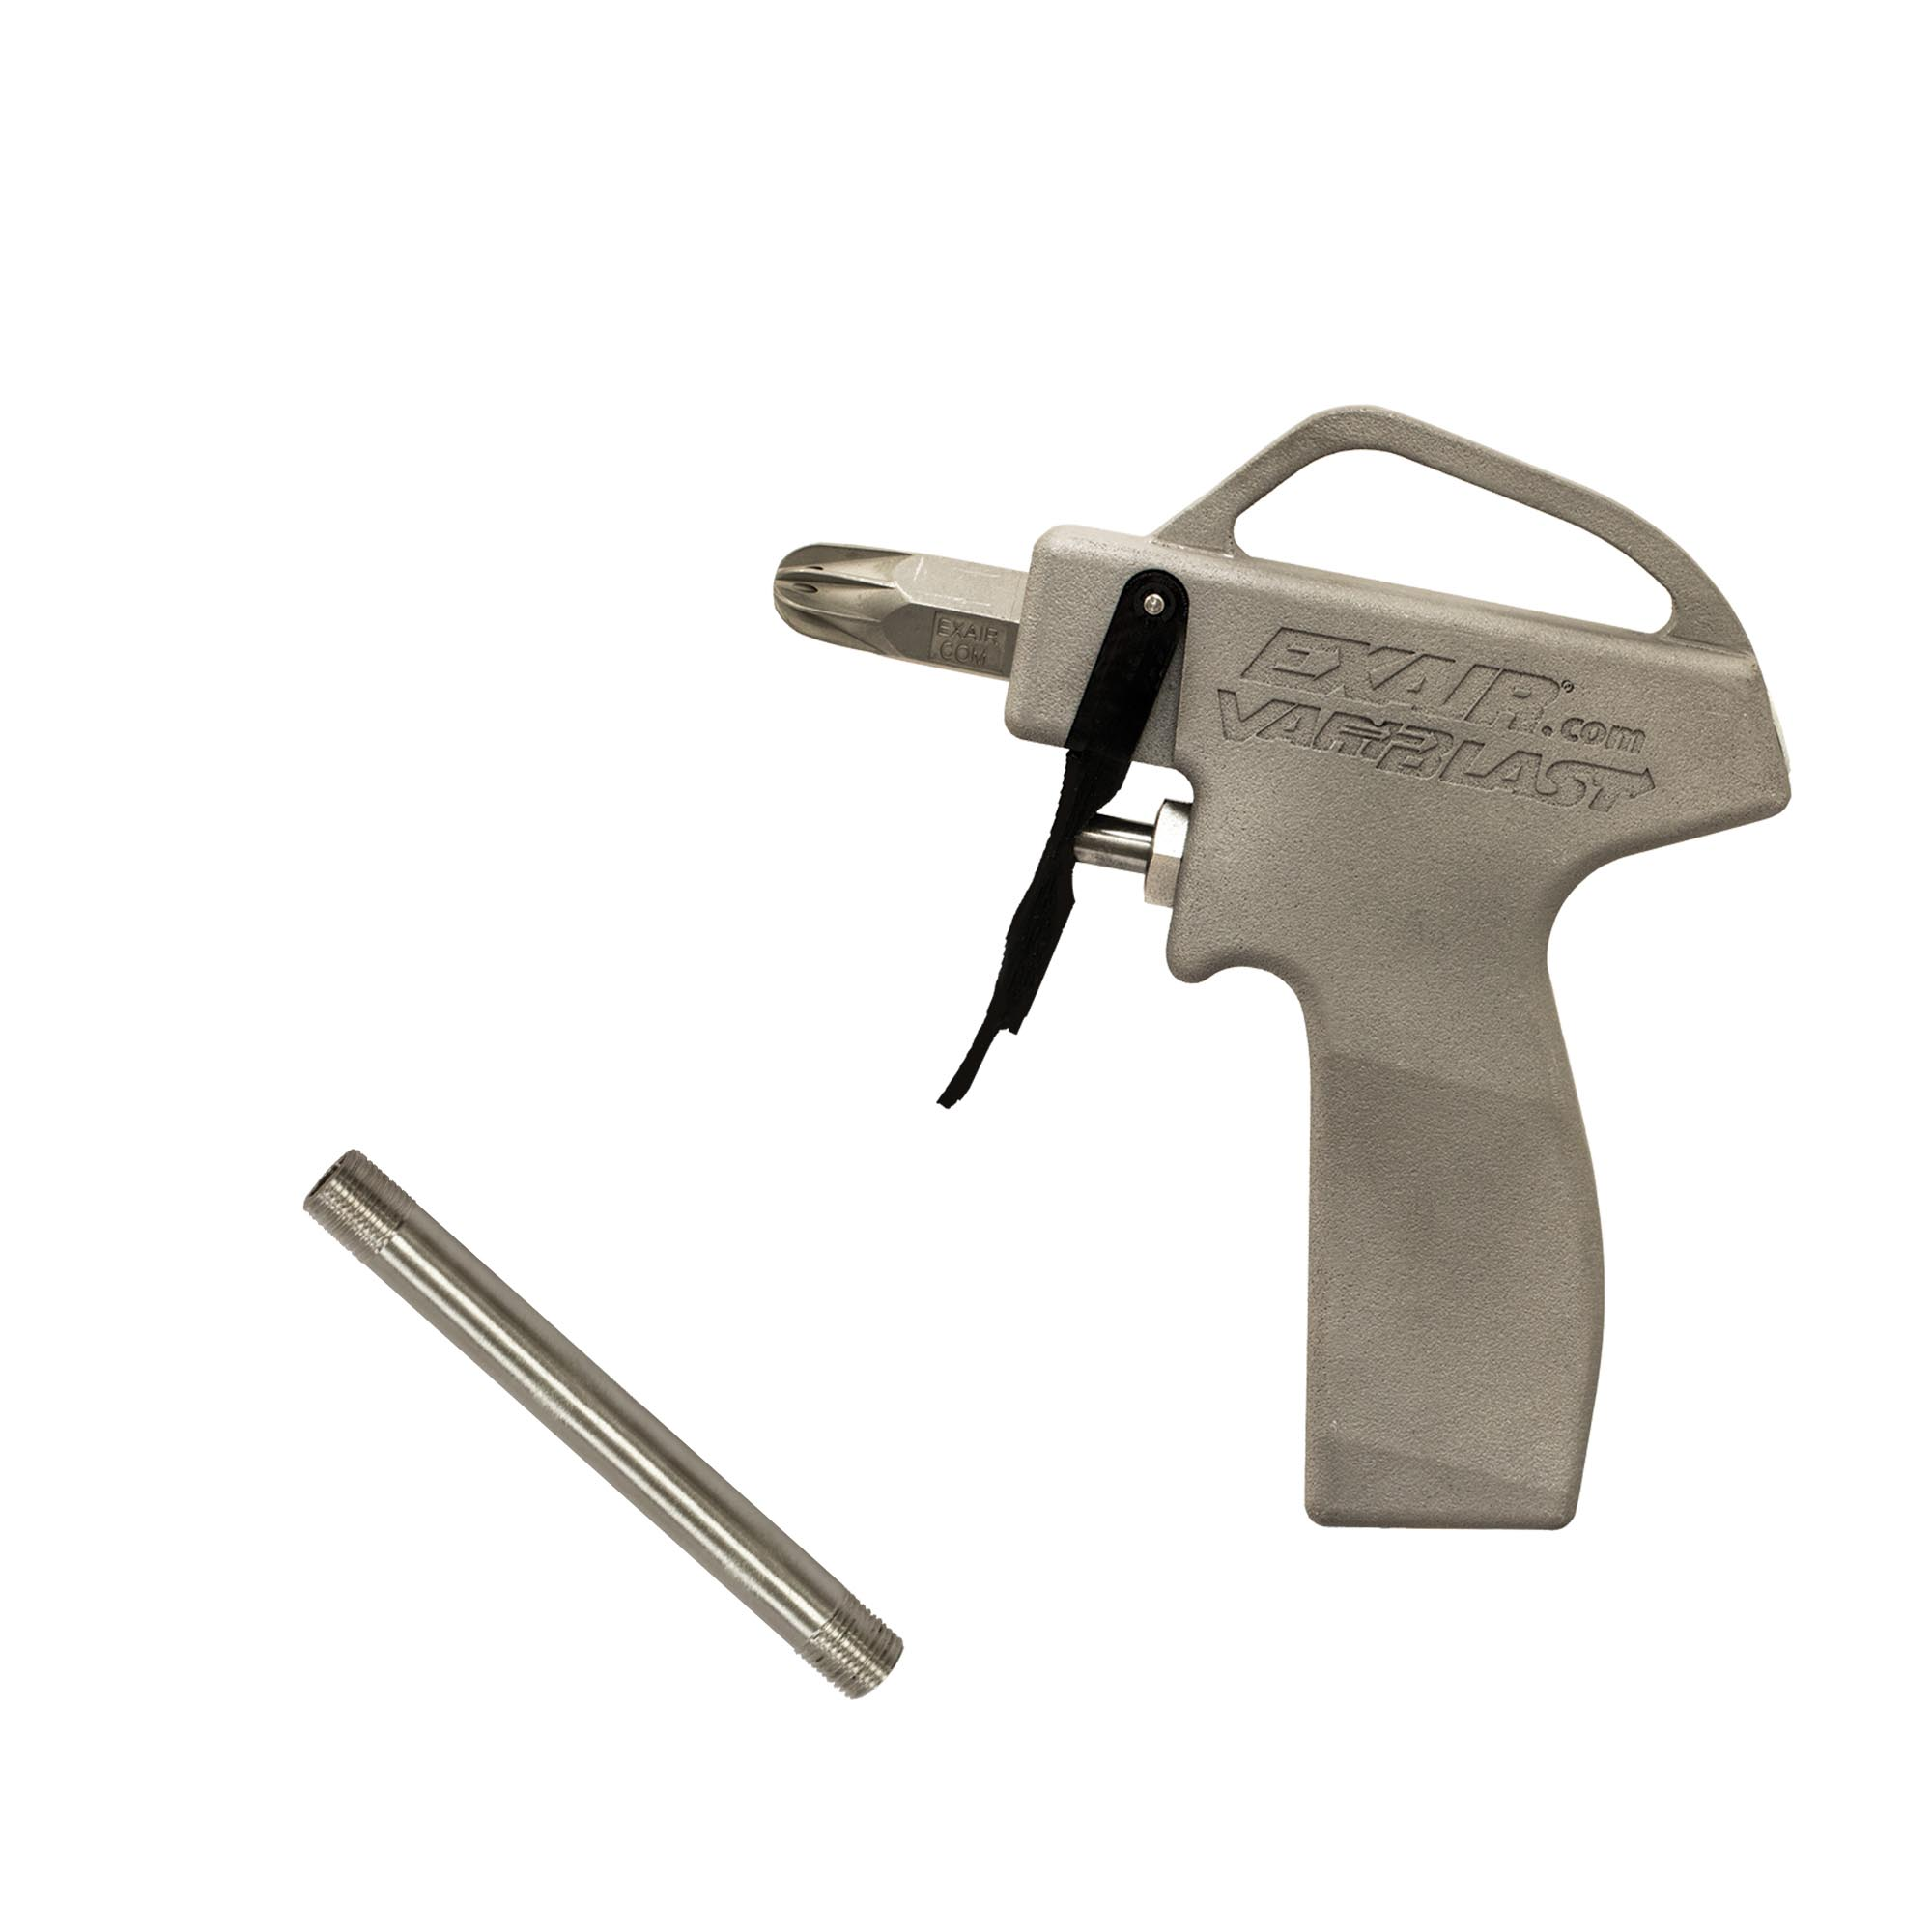 "Model 1699-24 VariBlast Compact Safety Air Gun with Model 1103 Air Nozzle and 24"" Alum. Ext Pipe"